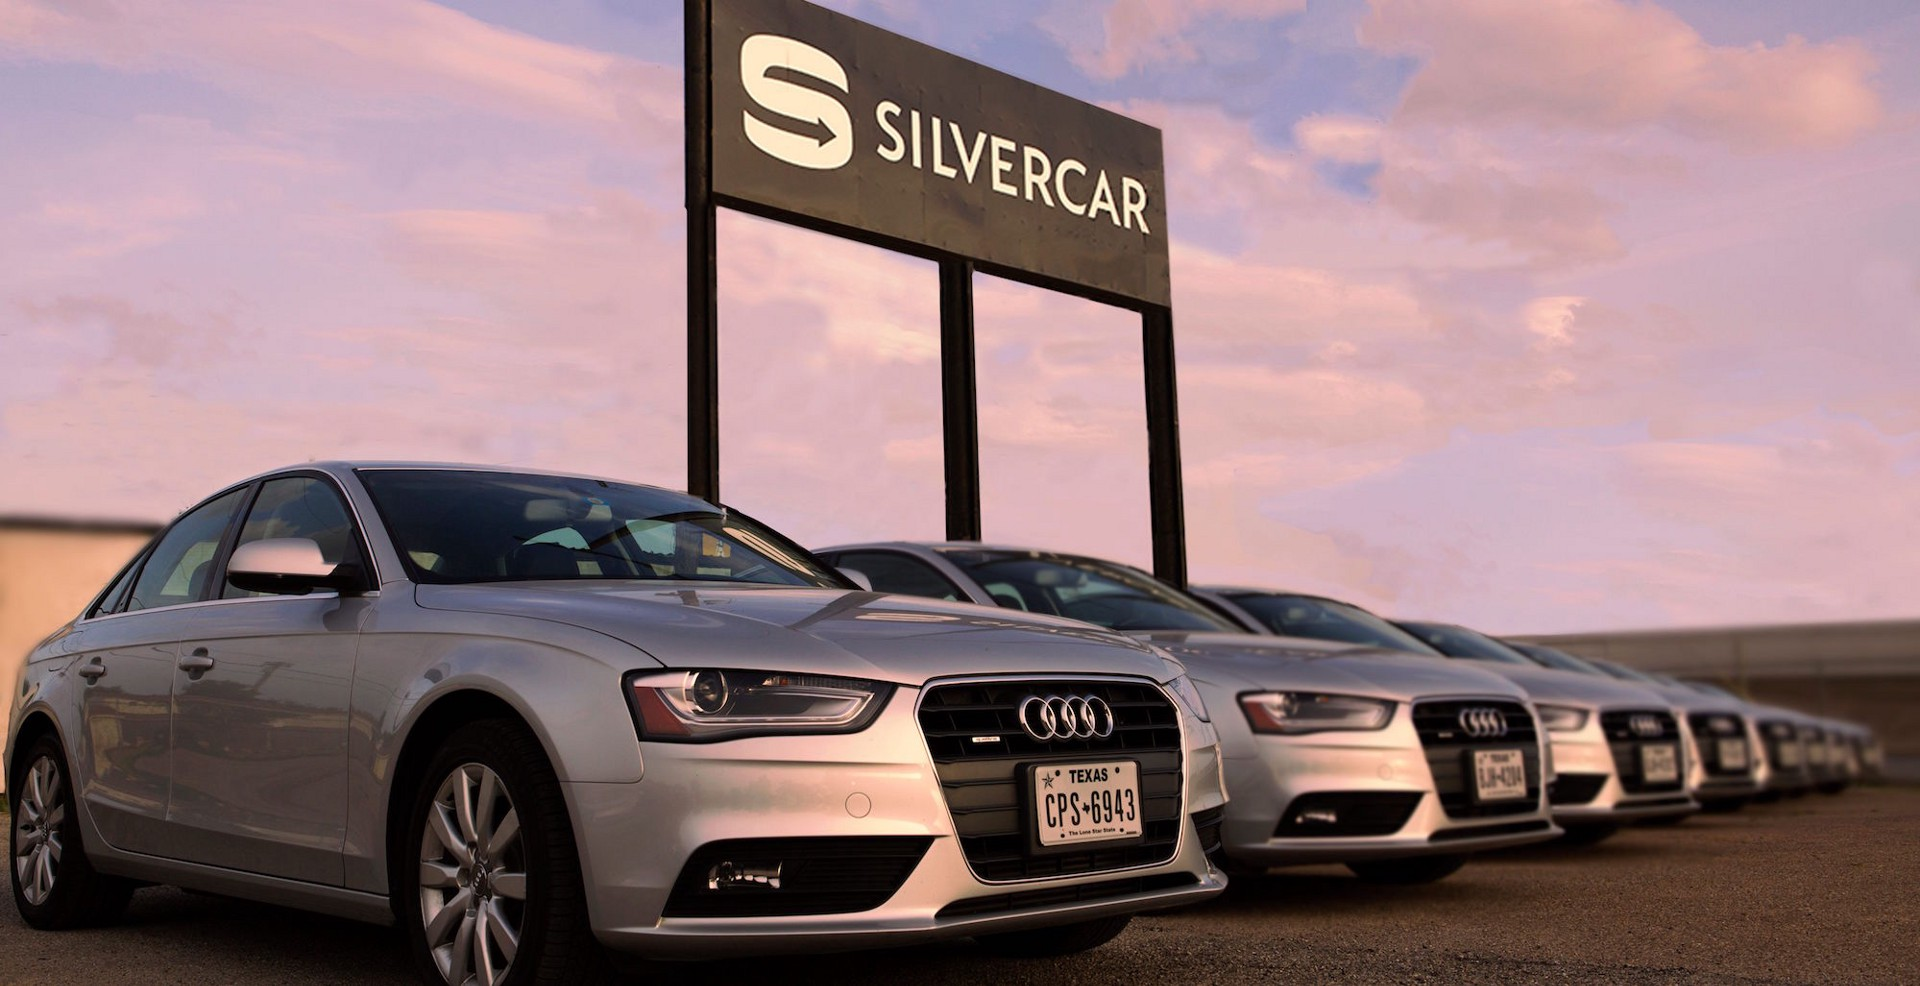 To Rent Or Not To Rent A Silvercar Review Chris Corriveau Medium